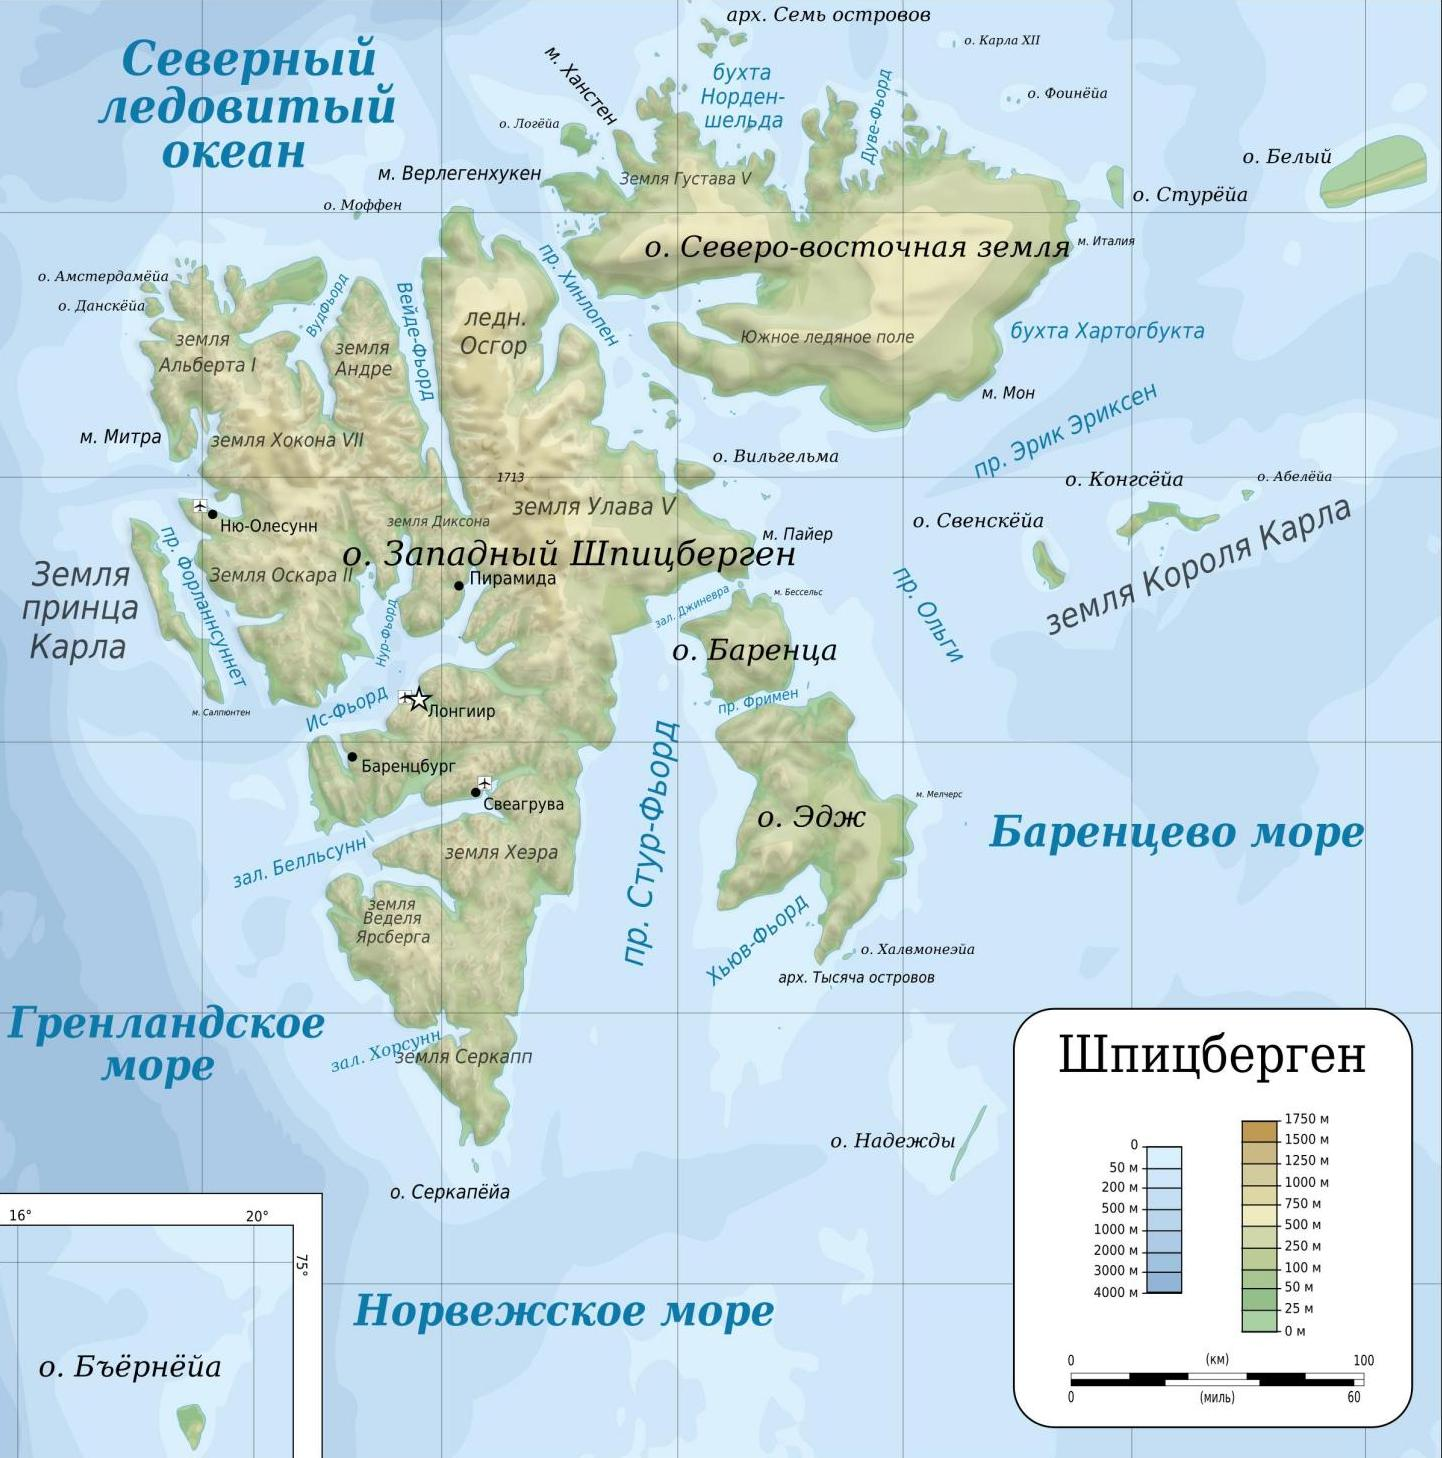 Topographic map of Svalbard ru.jpeg